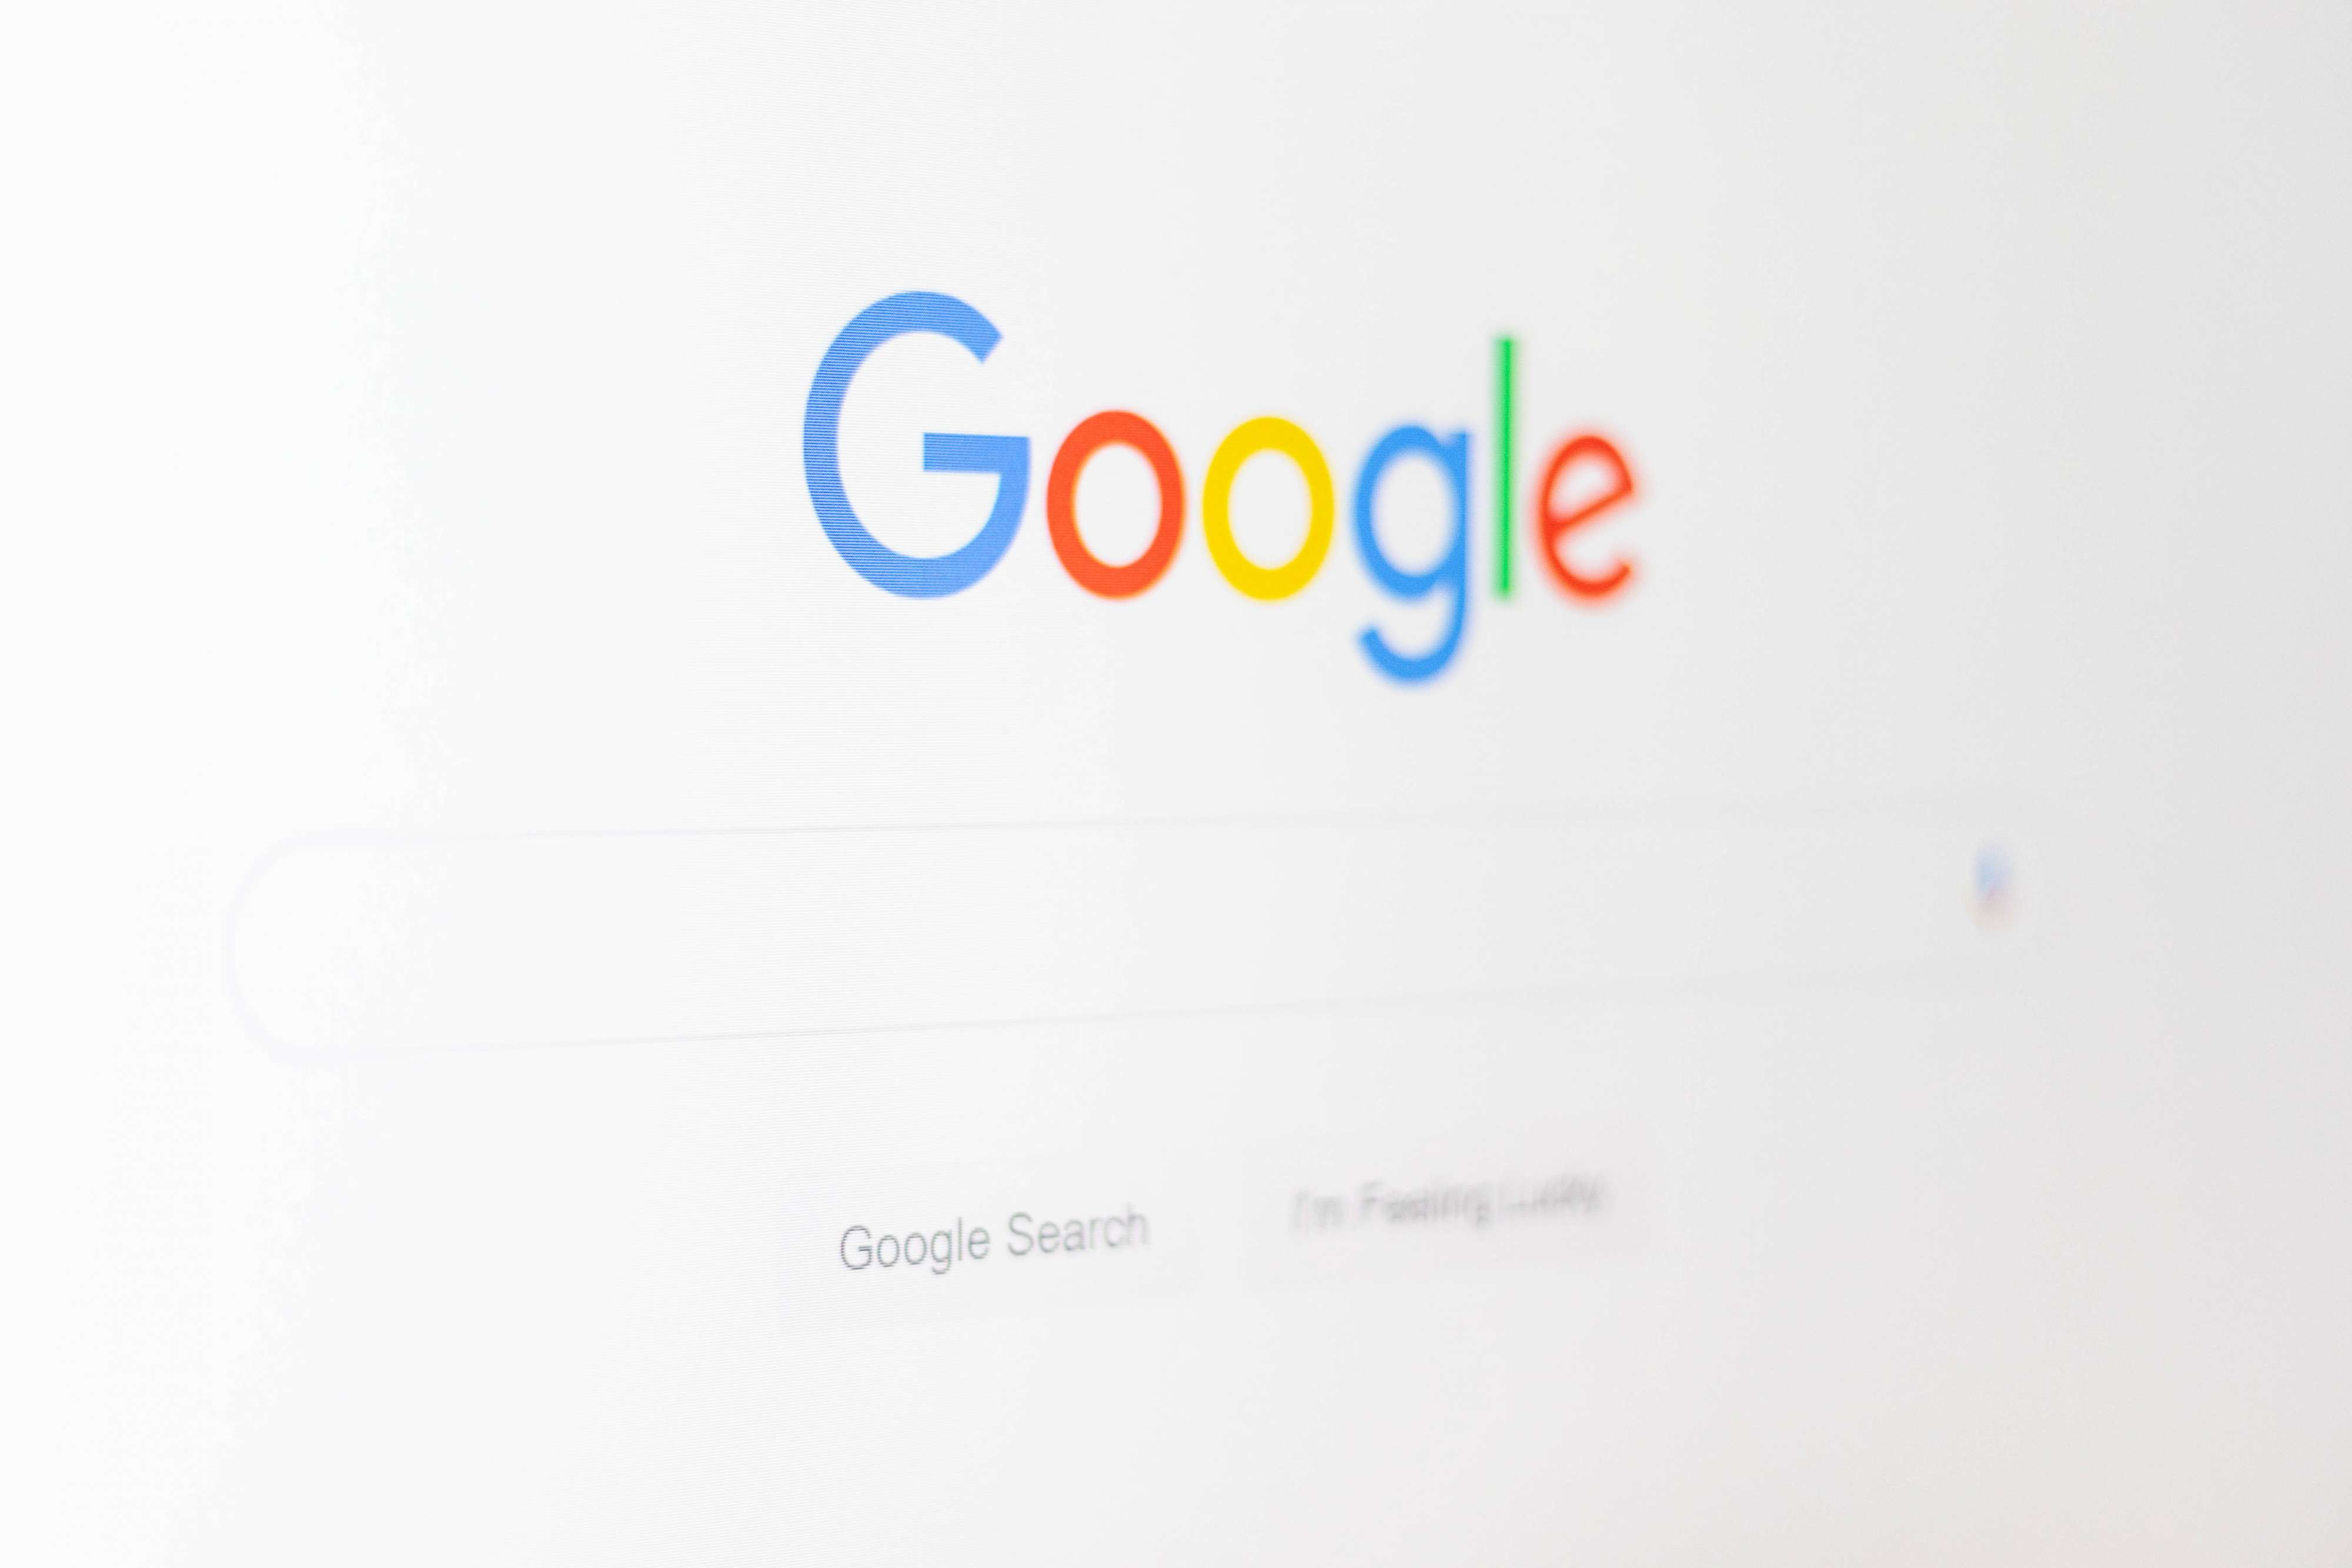 Google Ads: The End of 'Average Position'